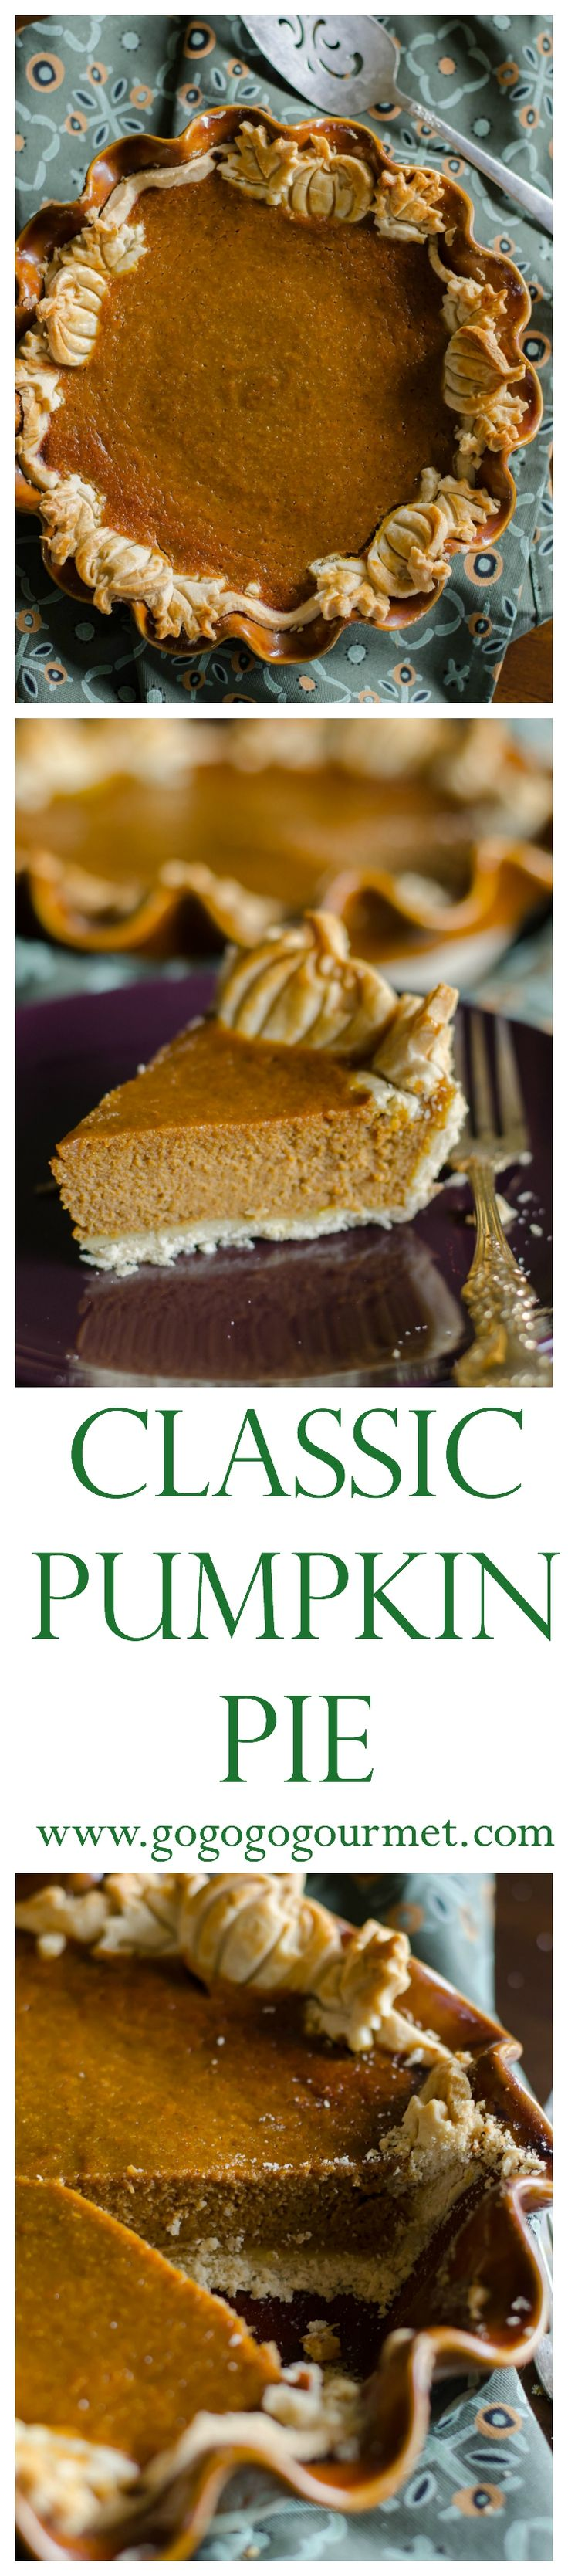 No reason to gussy up pumpkin pie- this classic pumpkin pie is best! | Go Go Go Gourmet @gogogogourmet